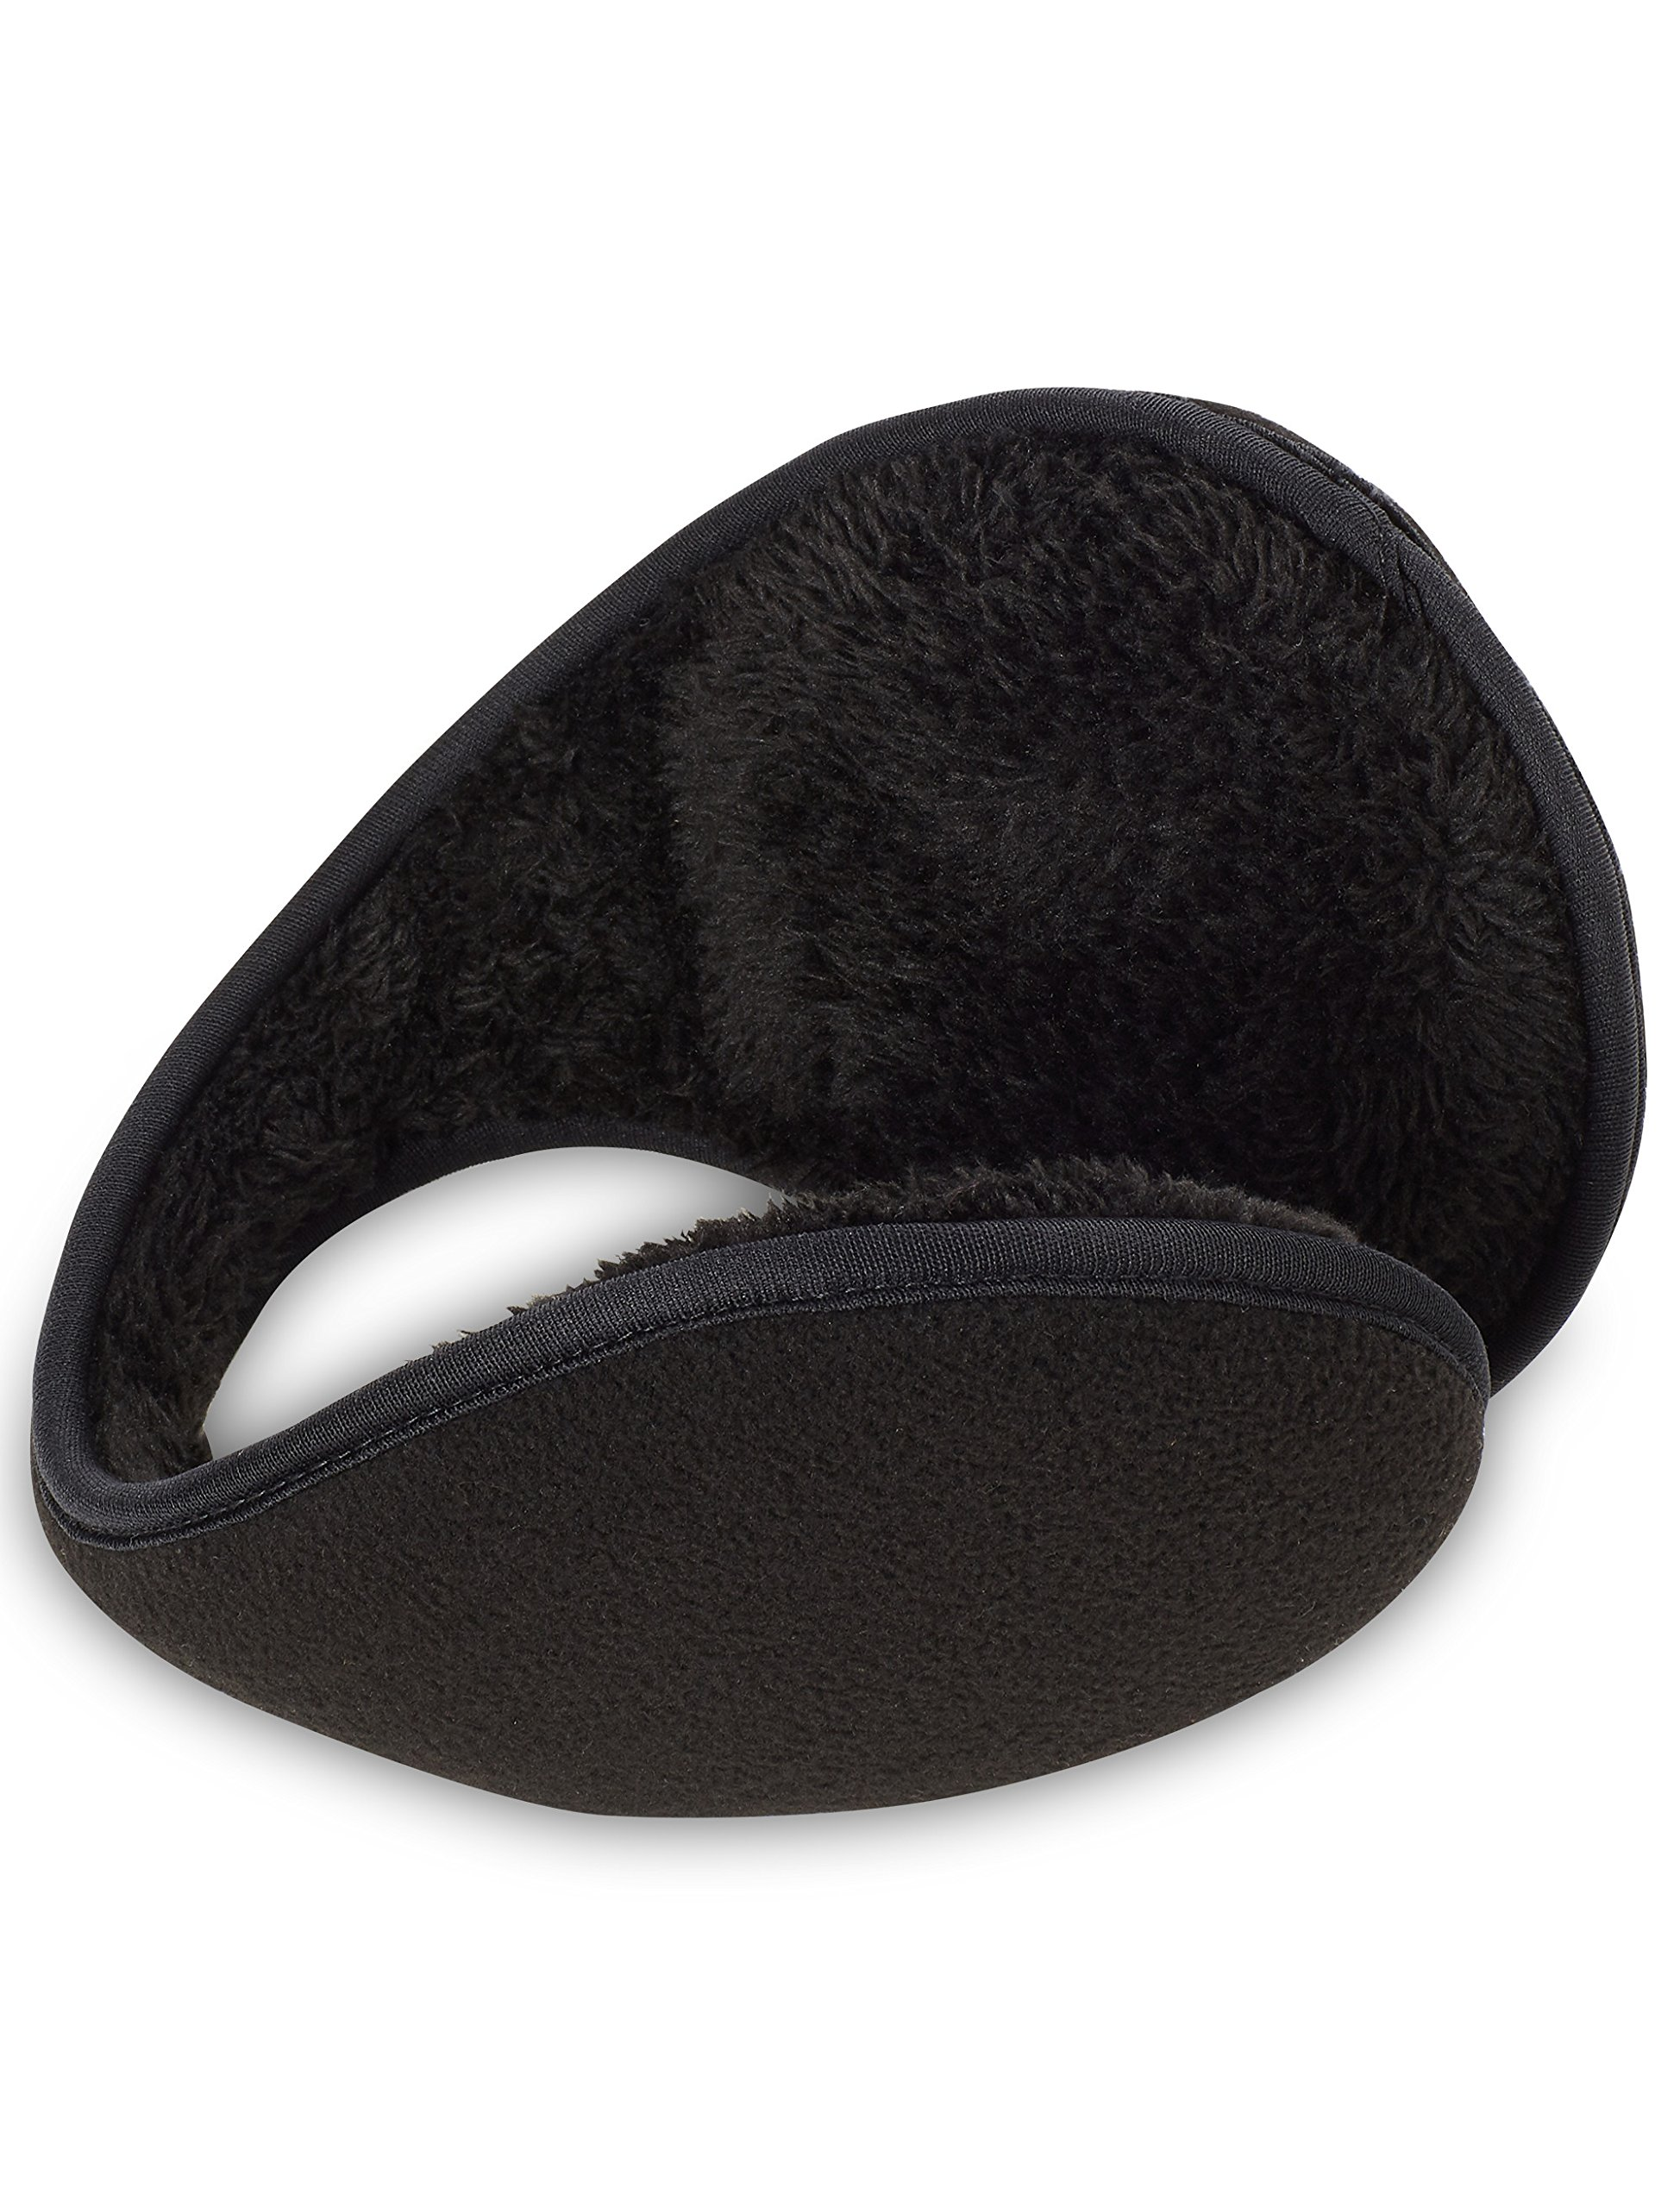 DXL Big and Tall Insulated Ear Warmers by DXL